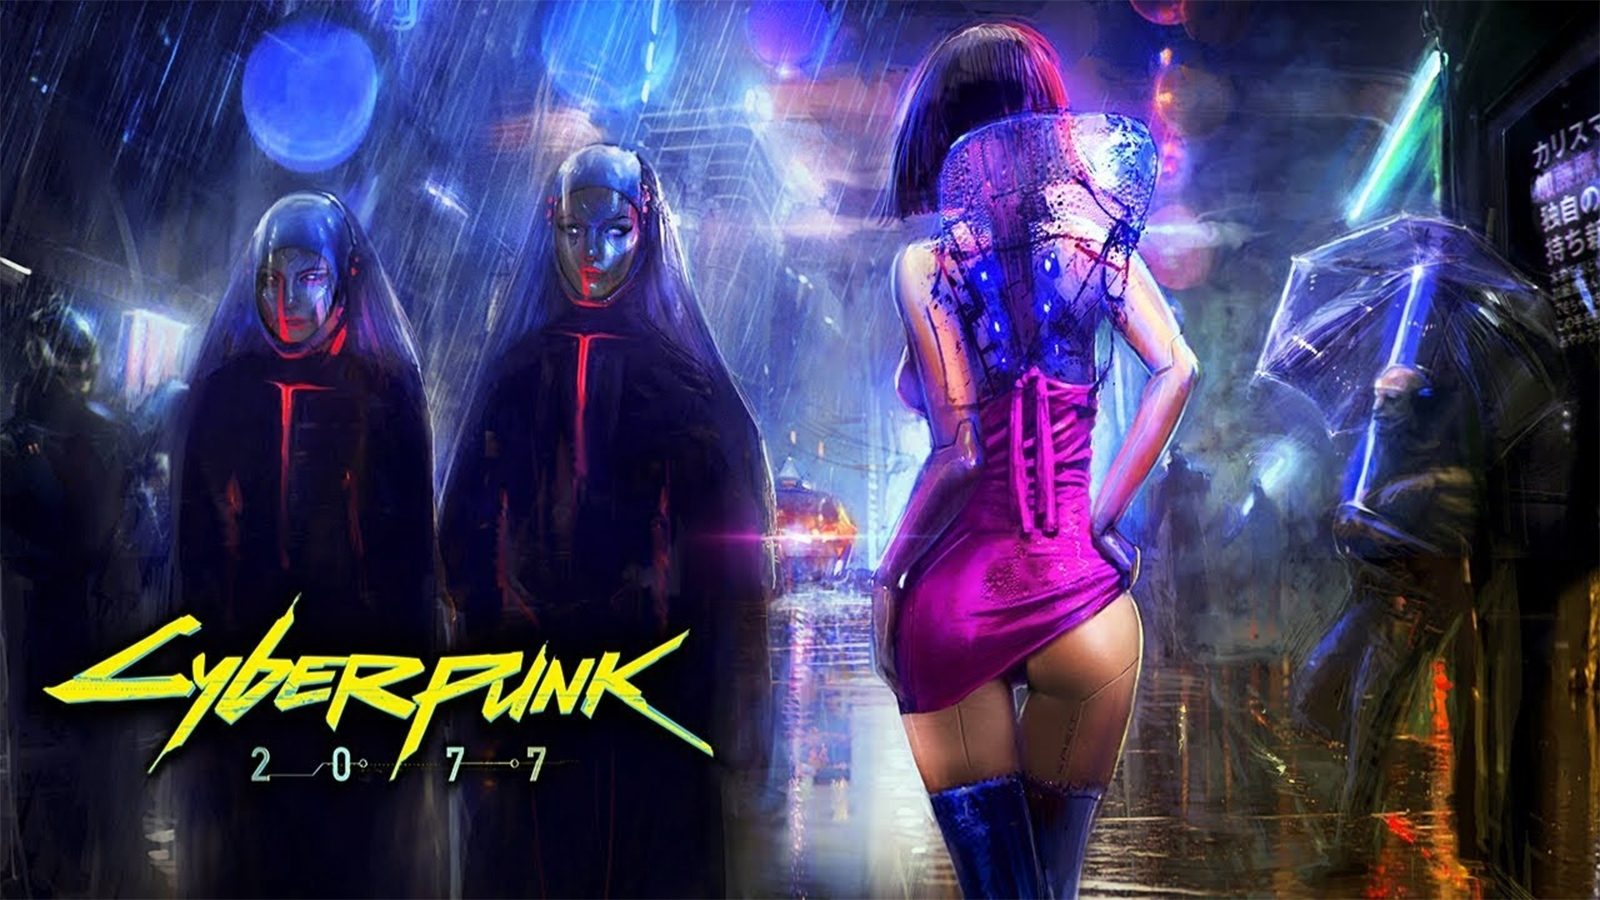 Cyberpunk 2077 Adult Content Rating